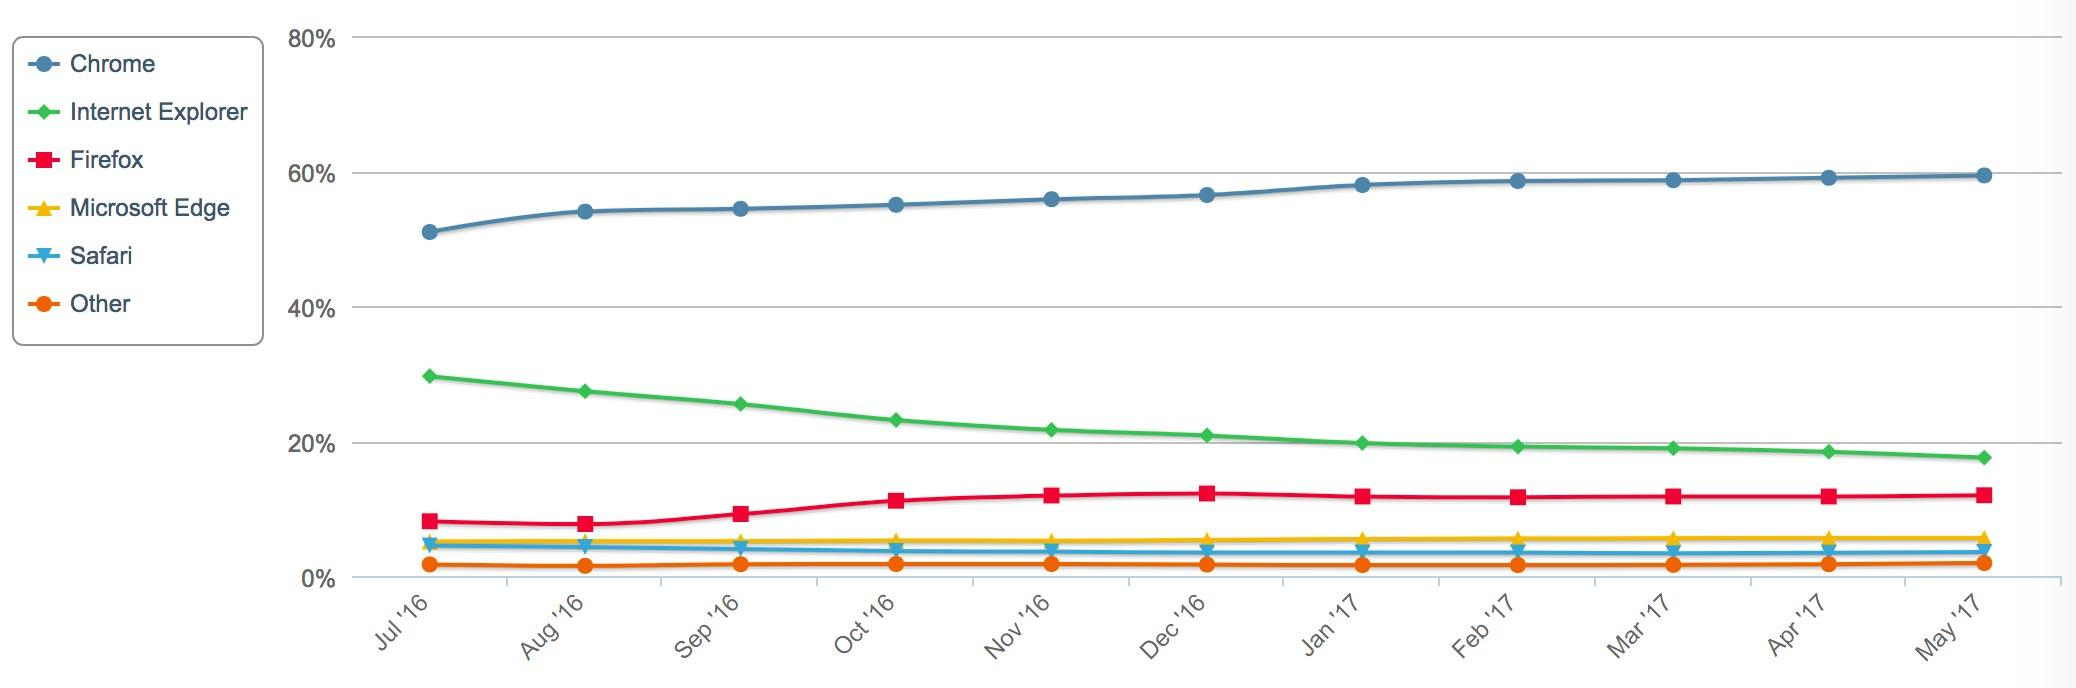 Firefox's share of users trails Google's Chrome, but NetApplications' NetMarketShare statistics show growth in the last year.